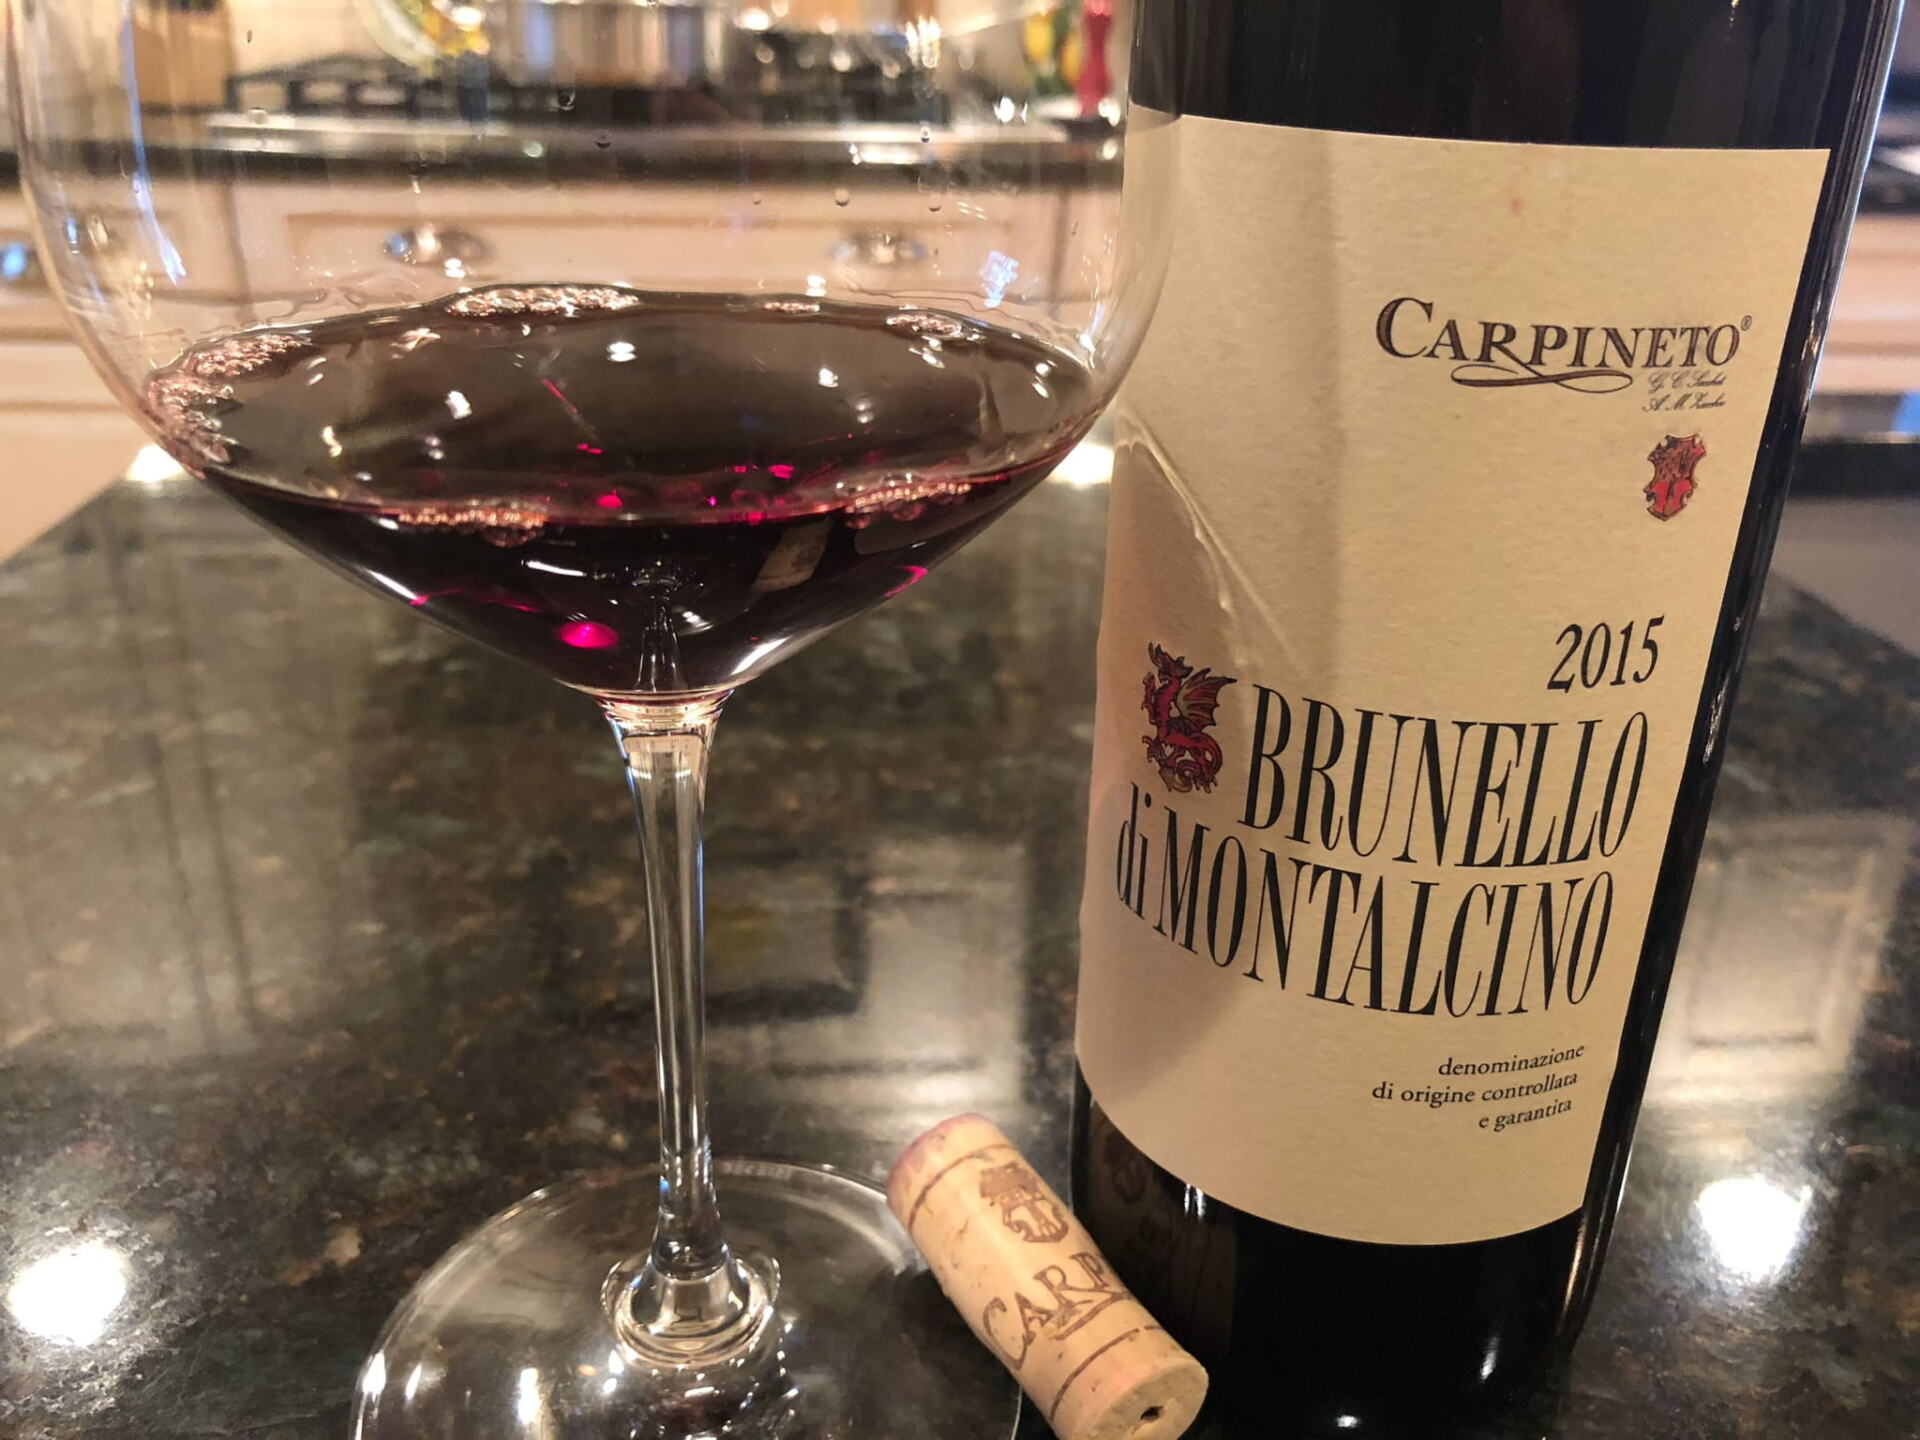 Brunello bottle and glass